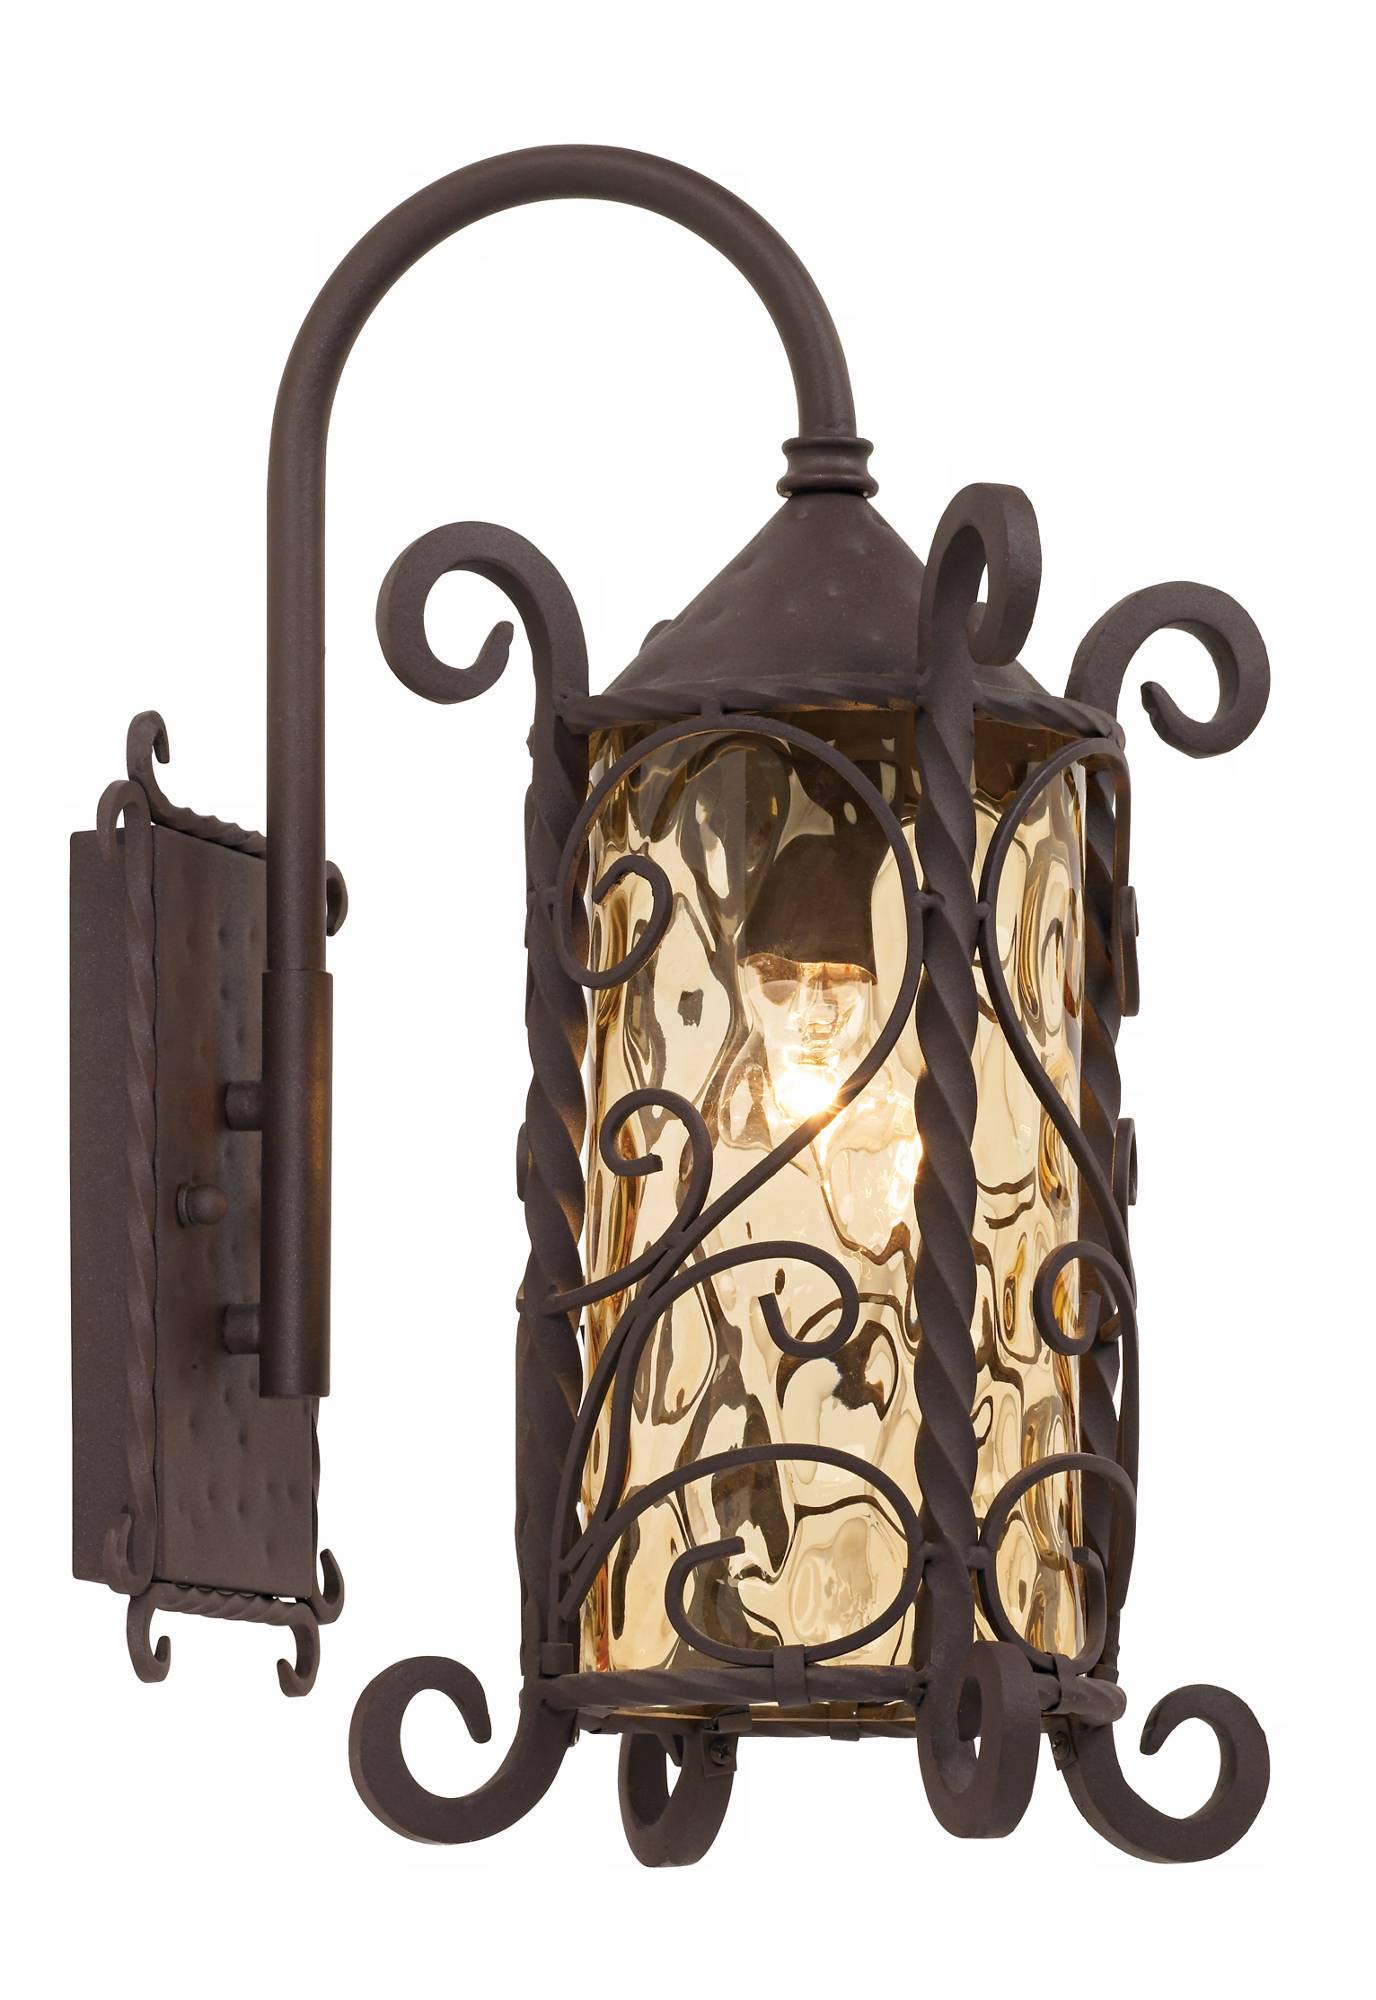 Casa Seville Rustic Outdoor Wall Light Fixture Mediterranean Inspired Dark Walnut Iron Twists 18 1/2'' Champagne Hammered Glass for Exterior House Porch Patio Deck - John Timberland by John Timberland (Image #2)